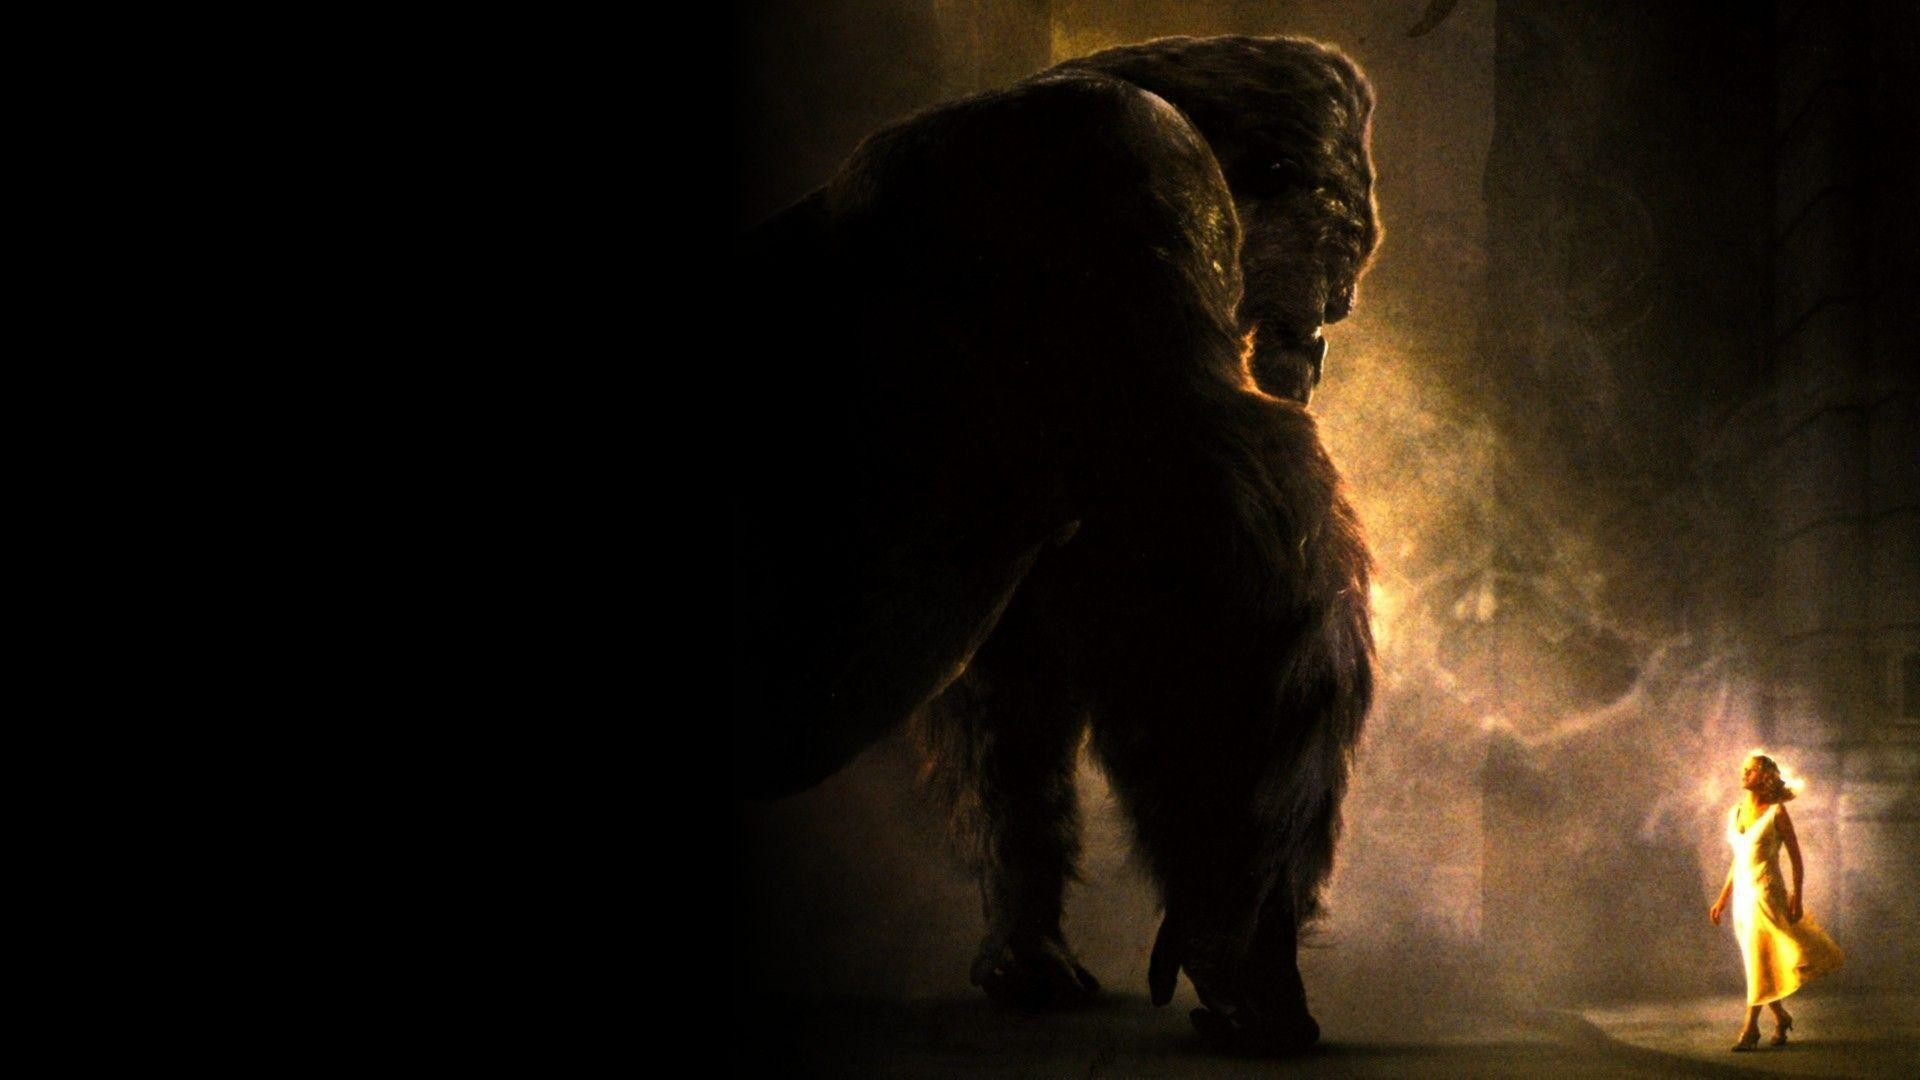 1920x1080 King Kong (2005) Wallpaper | HD Wallpapers Pictures